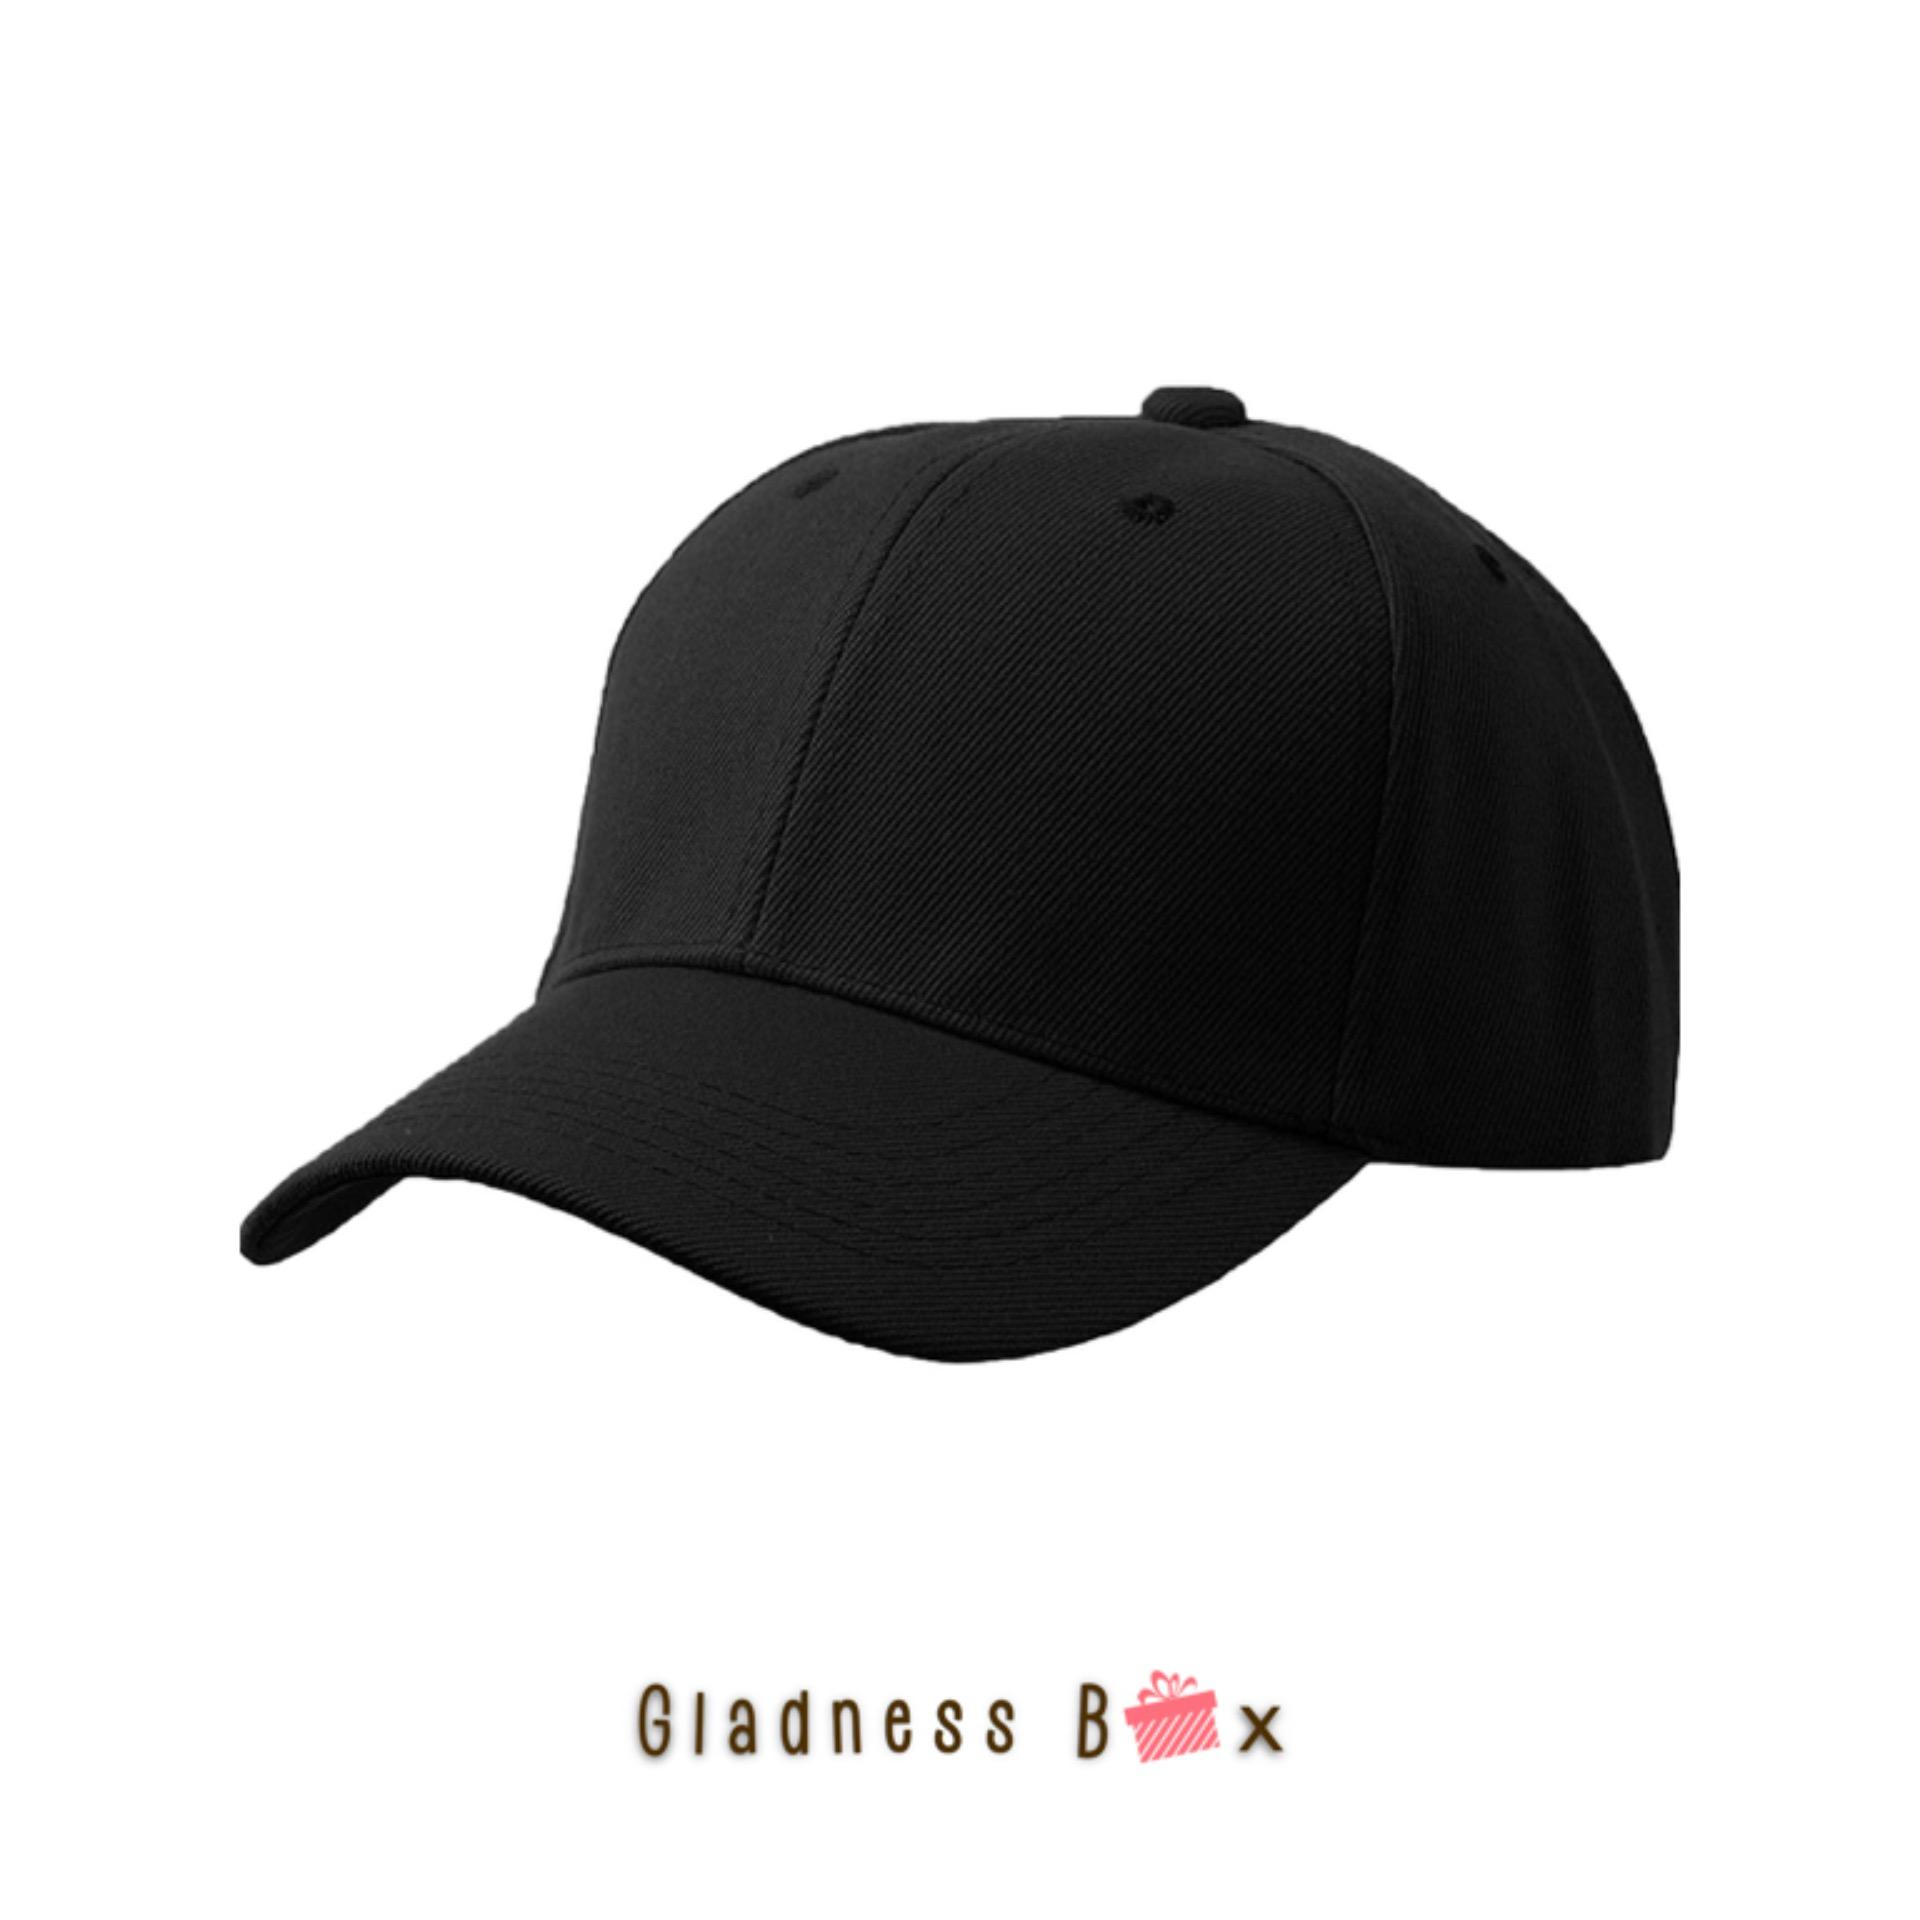 161c68cd Gladness Box High Quality Plain Baseball Cap for Men/Women/Unisex